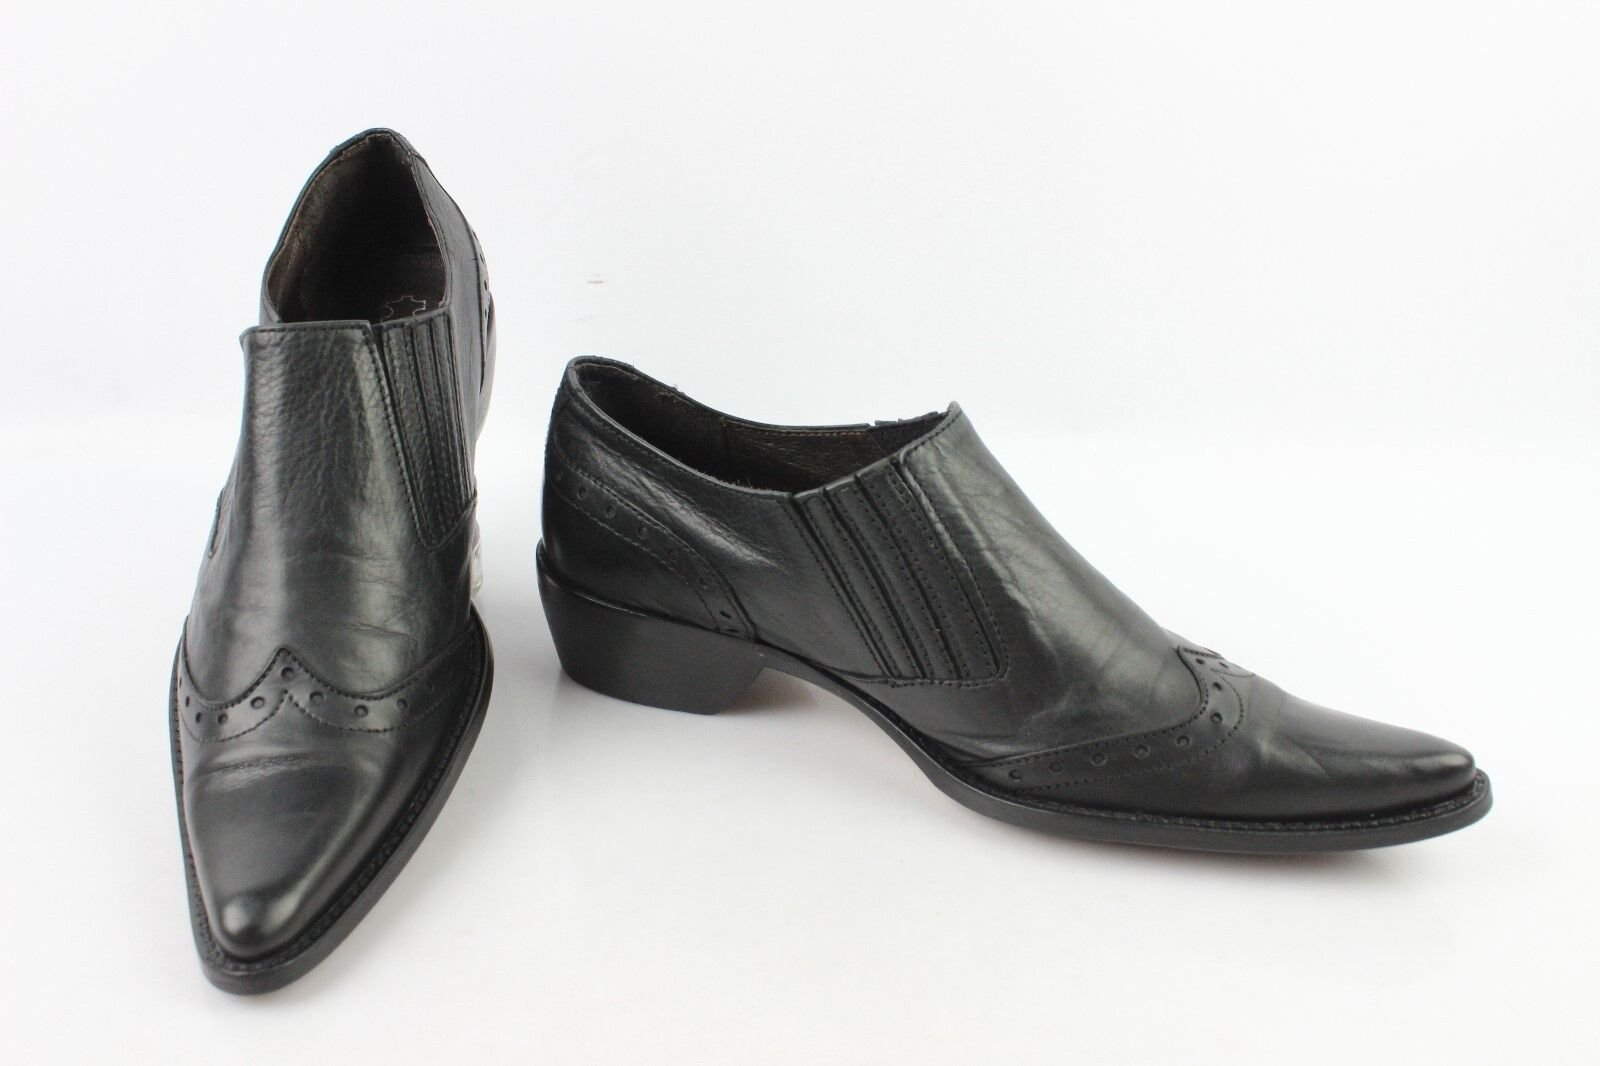 Boots Sharp  pointed CONTRE PIED Black Leather T 36 VERY GOOD CONDITION